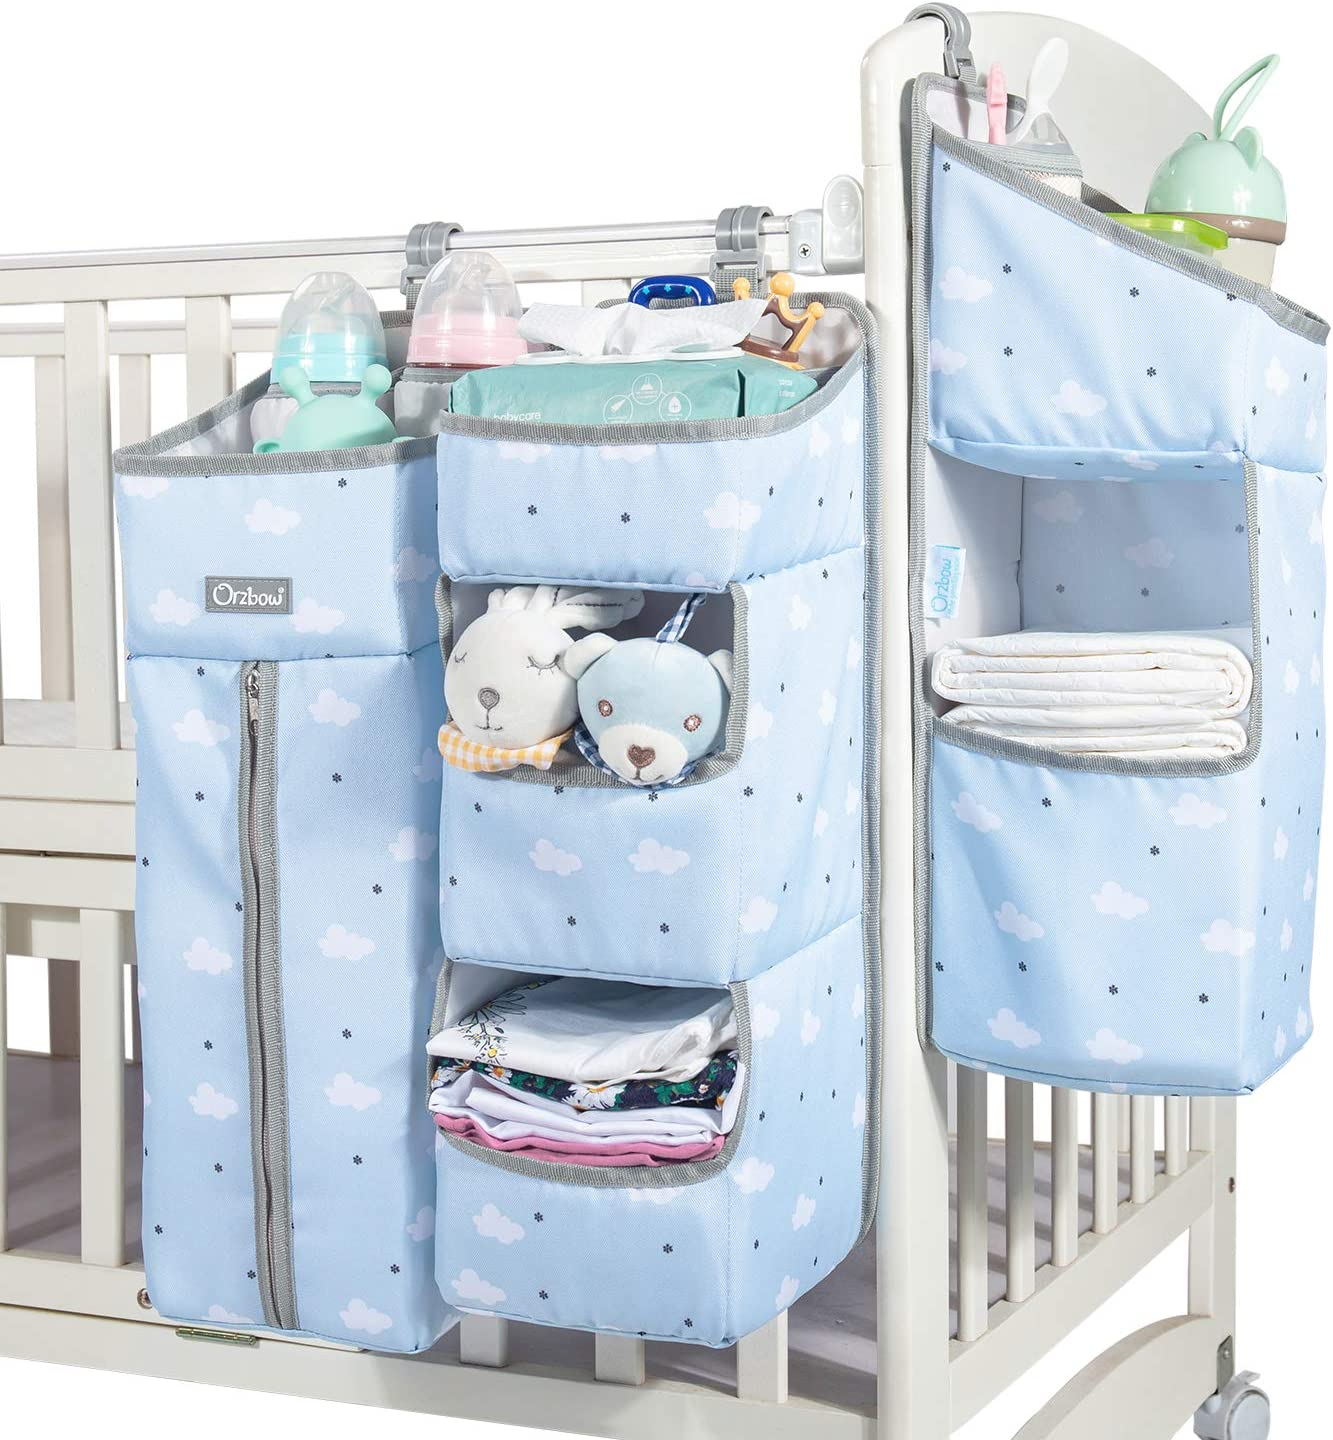 Orzbow 3-in-1 Nursery Organizer and Baby Diaper Caddy | Hanging Diaper Organization Storage for Baby Essentials | Hang on Crib, Changing Table or Wall (blue)